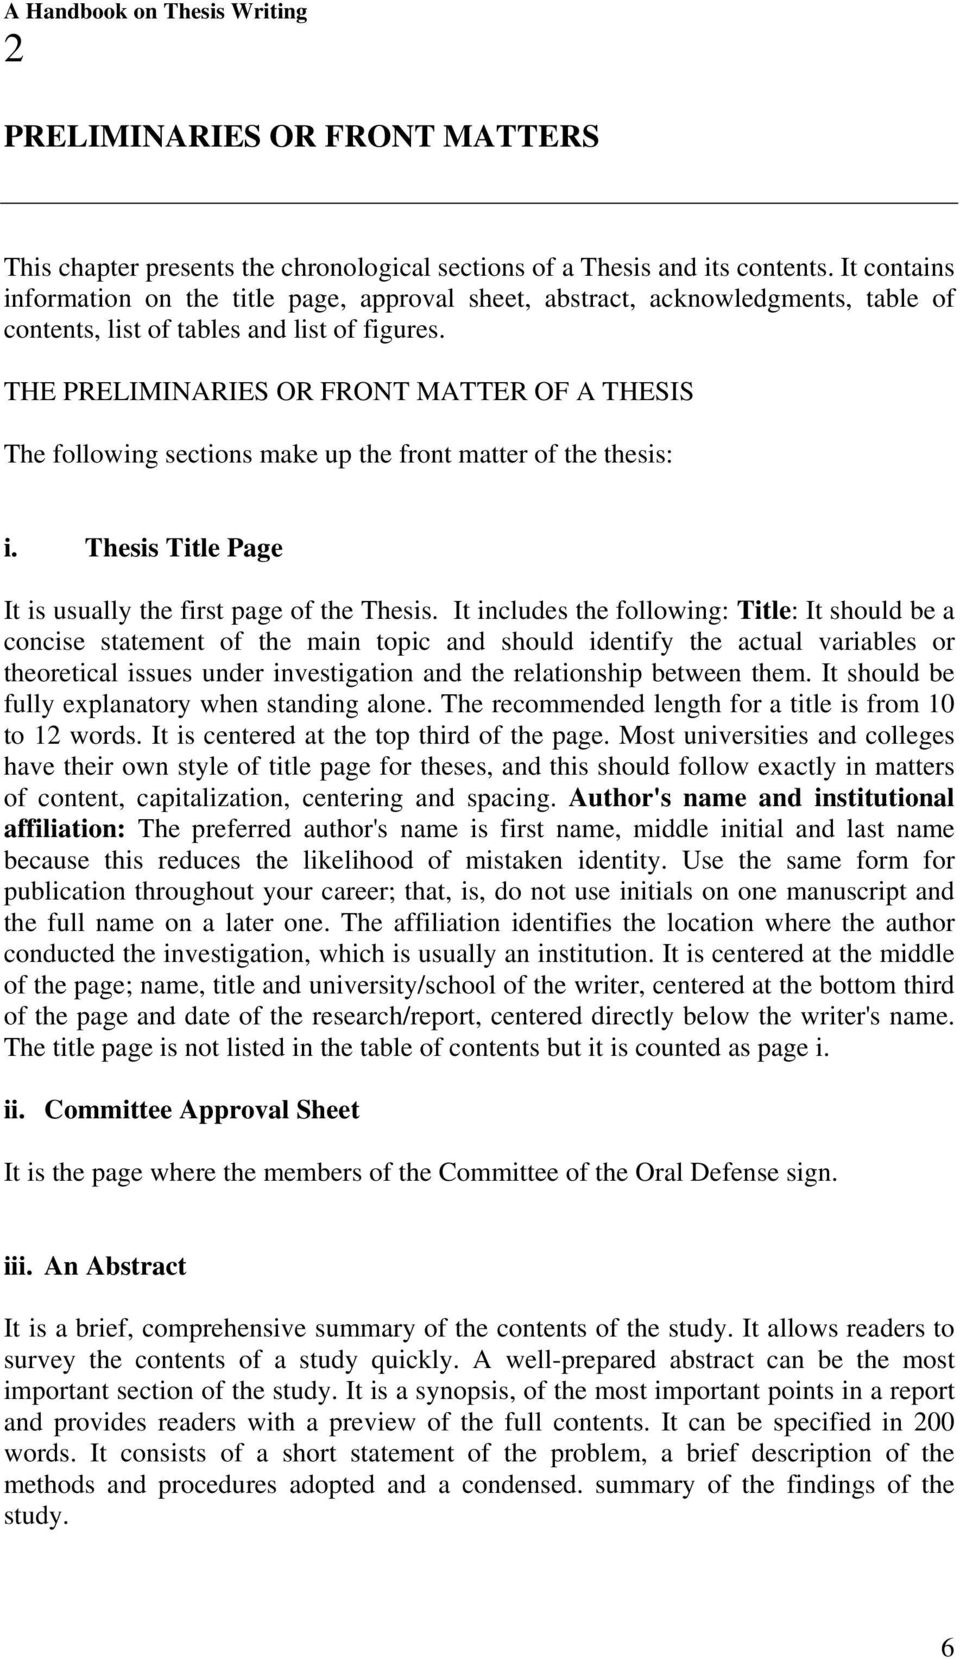 THE PRELIMINARIES OR FRONT MATTER OF A THESIS The following sections make up the front matter of the thesis: i. Thesis Title Page It is usually the first page of the Thesis.